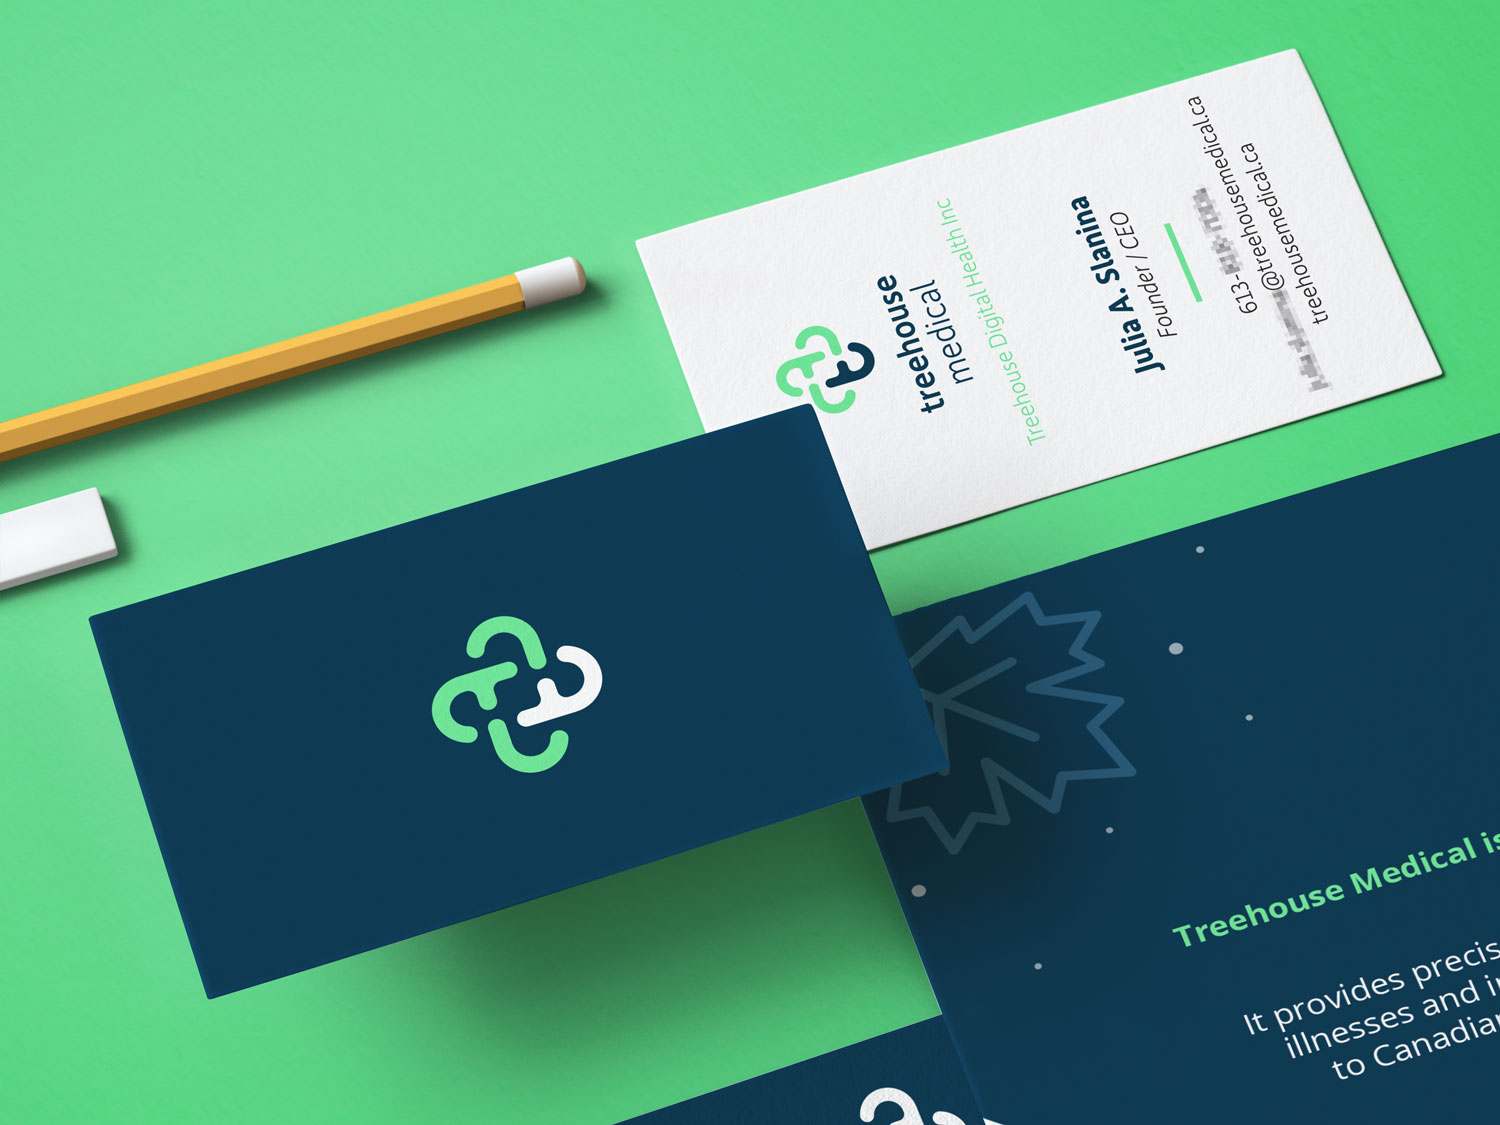 Branding collateral (business card and brochure) for Treehouse Medical